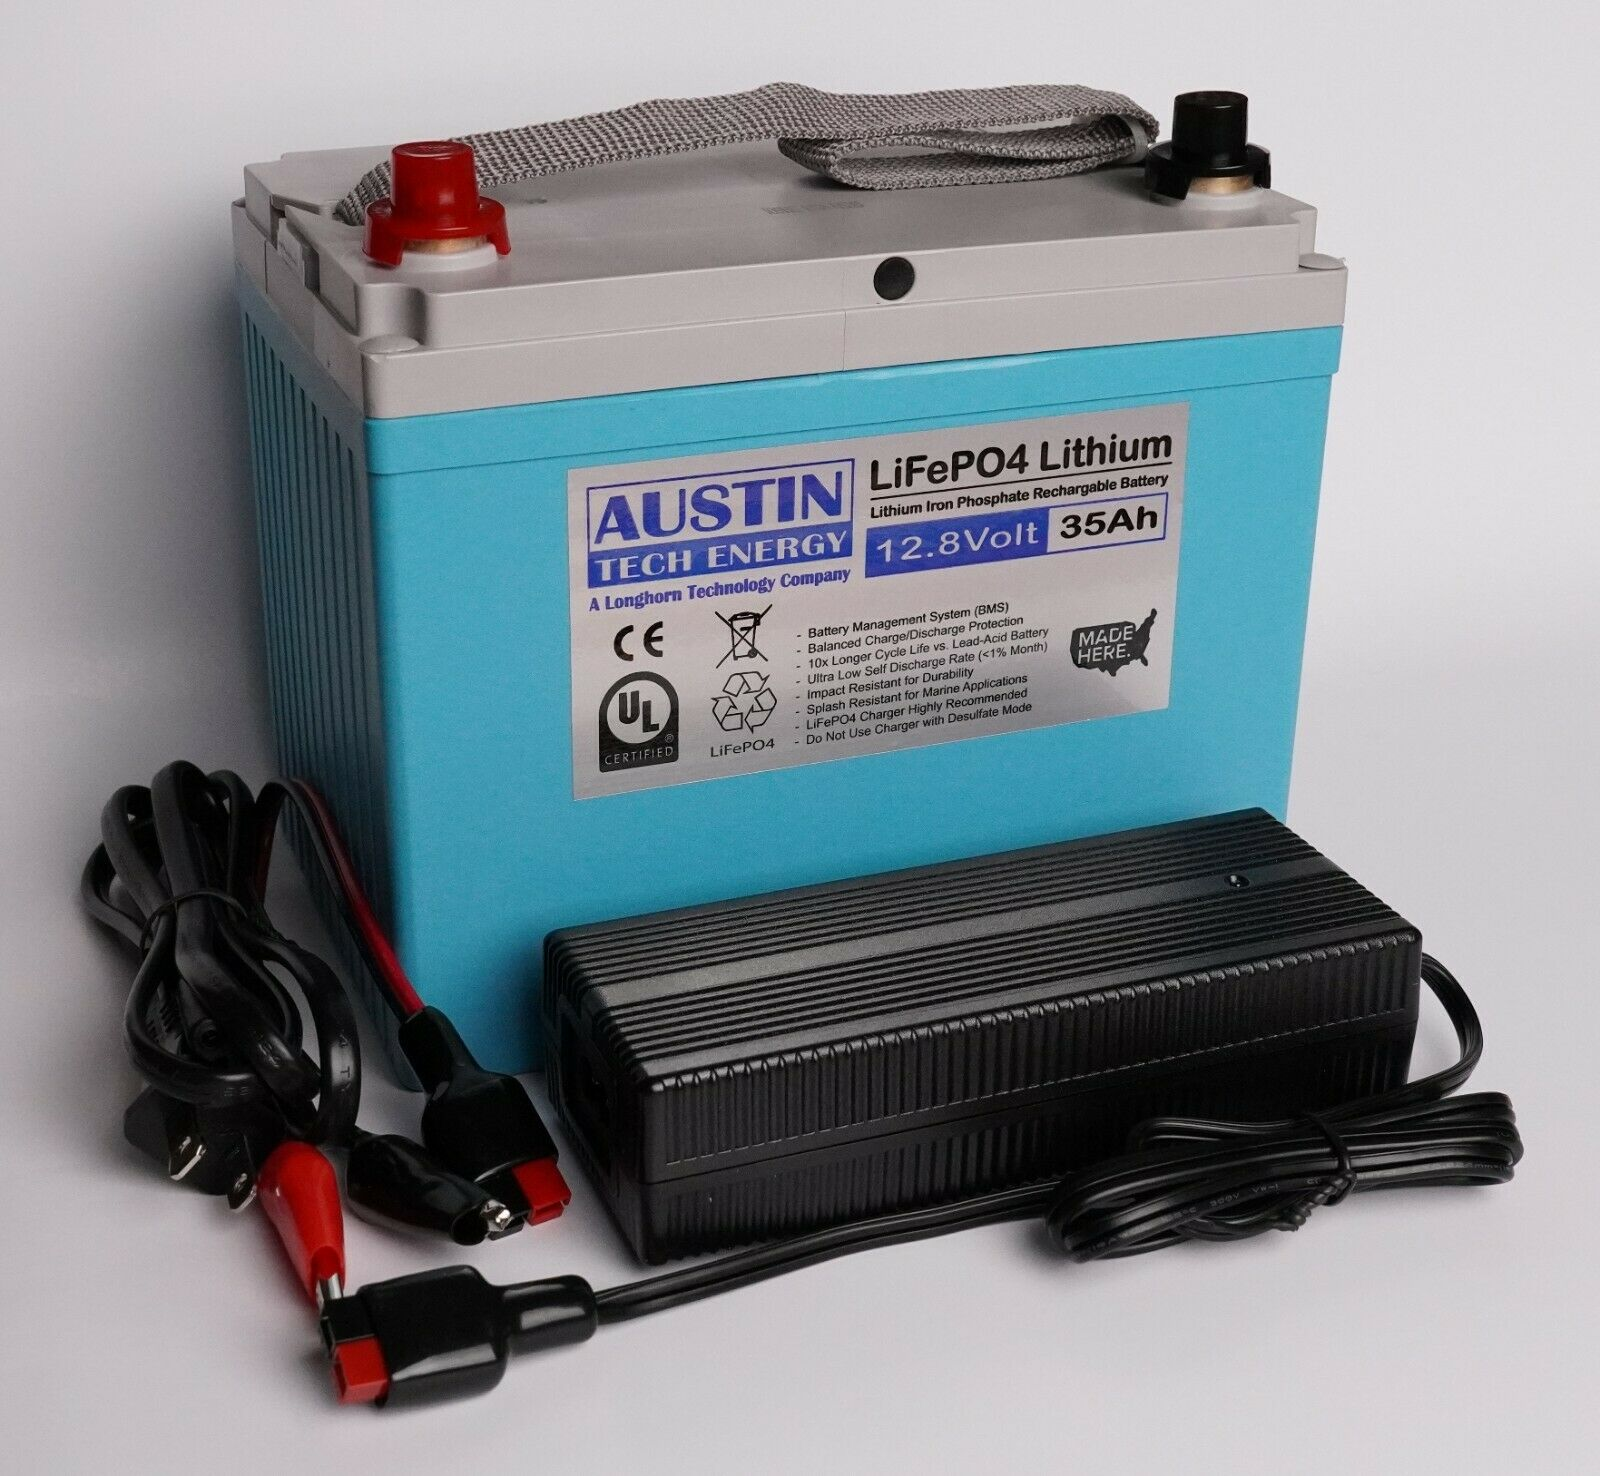 *****FREE 4A Charger***** LiFePO4 12.8-Volt 35Ah Lithium Iron Phosphate Battery